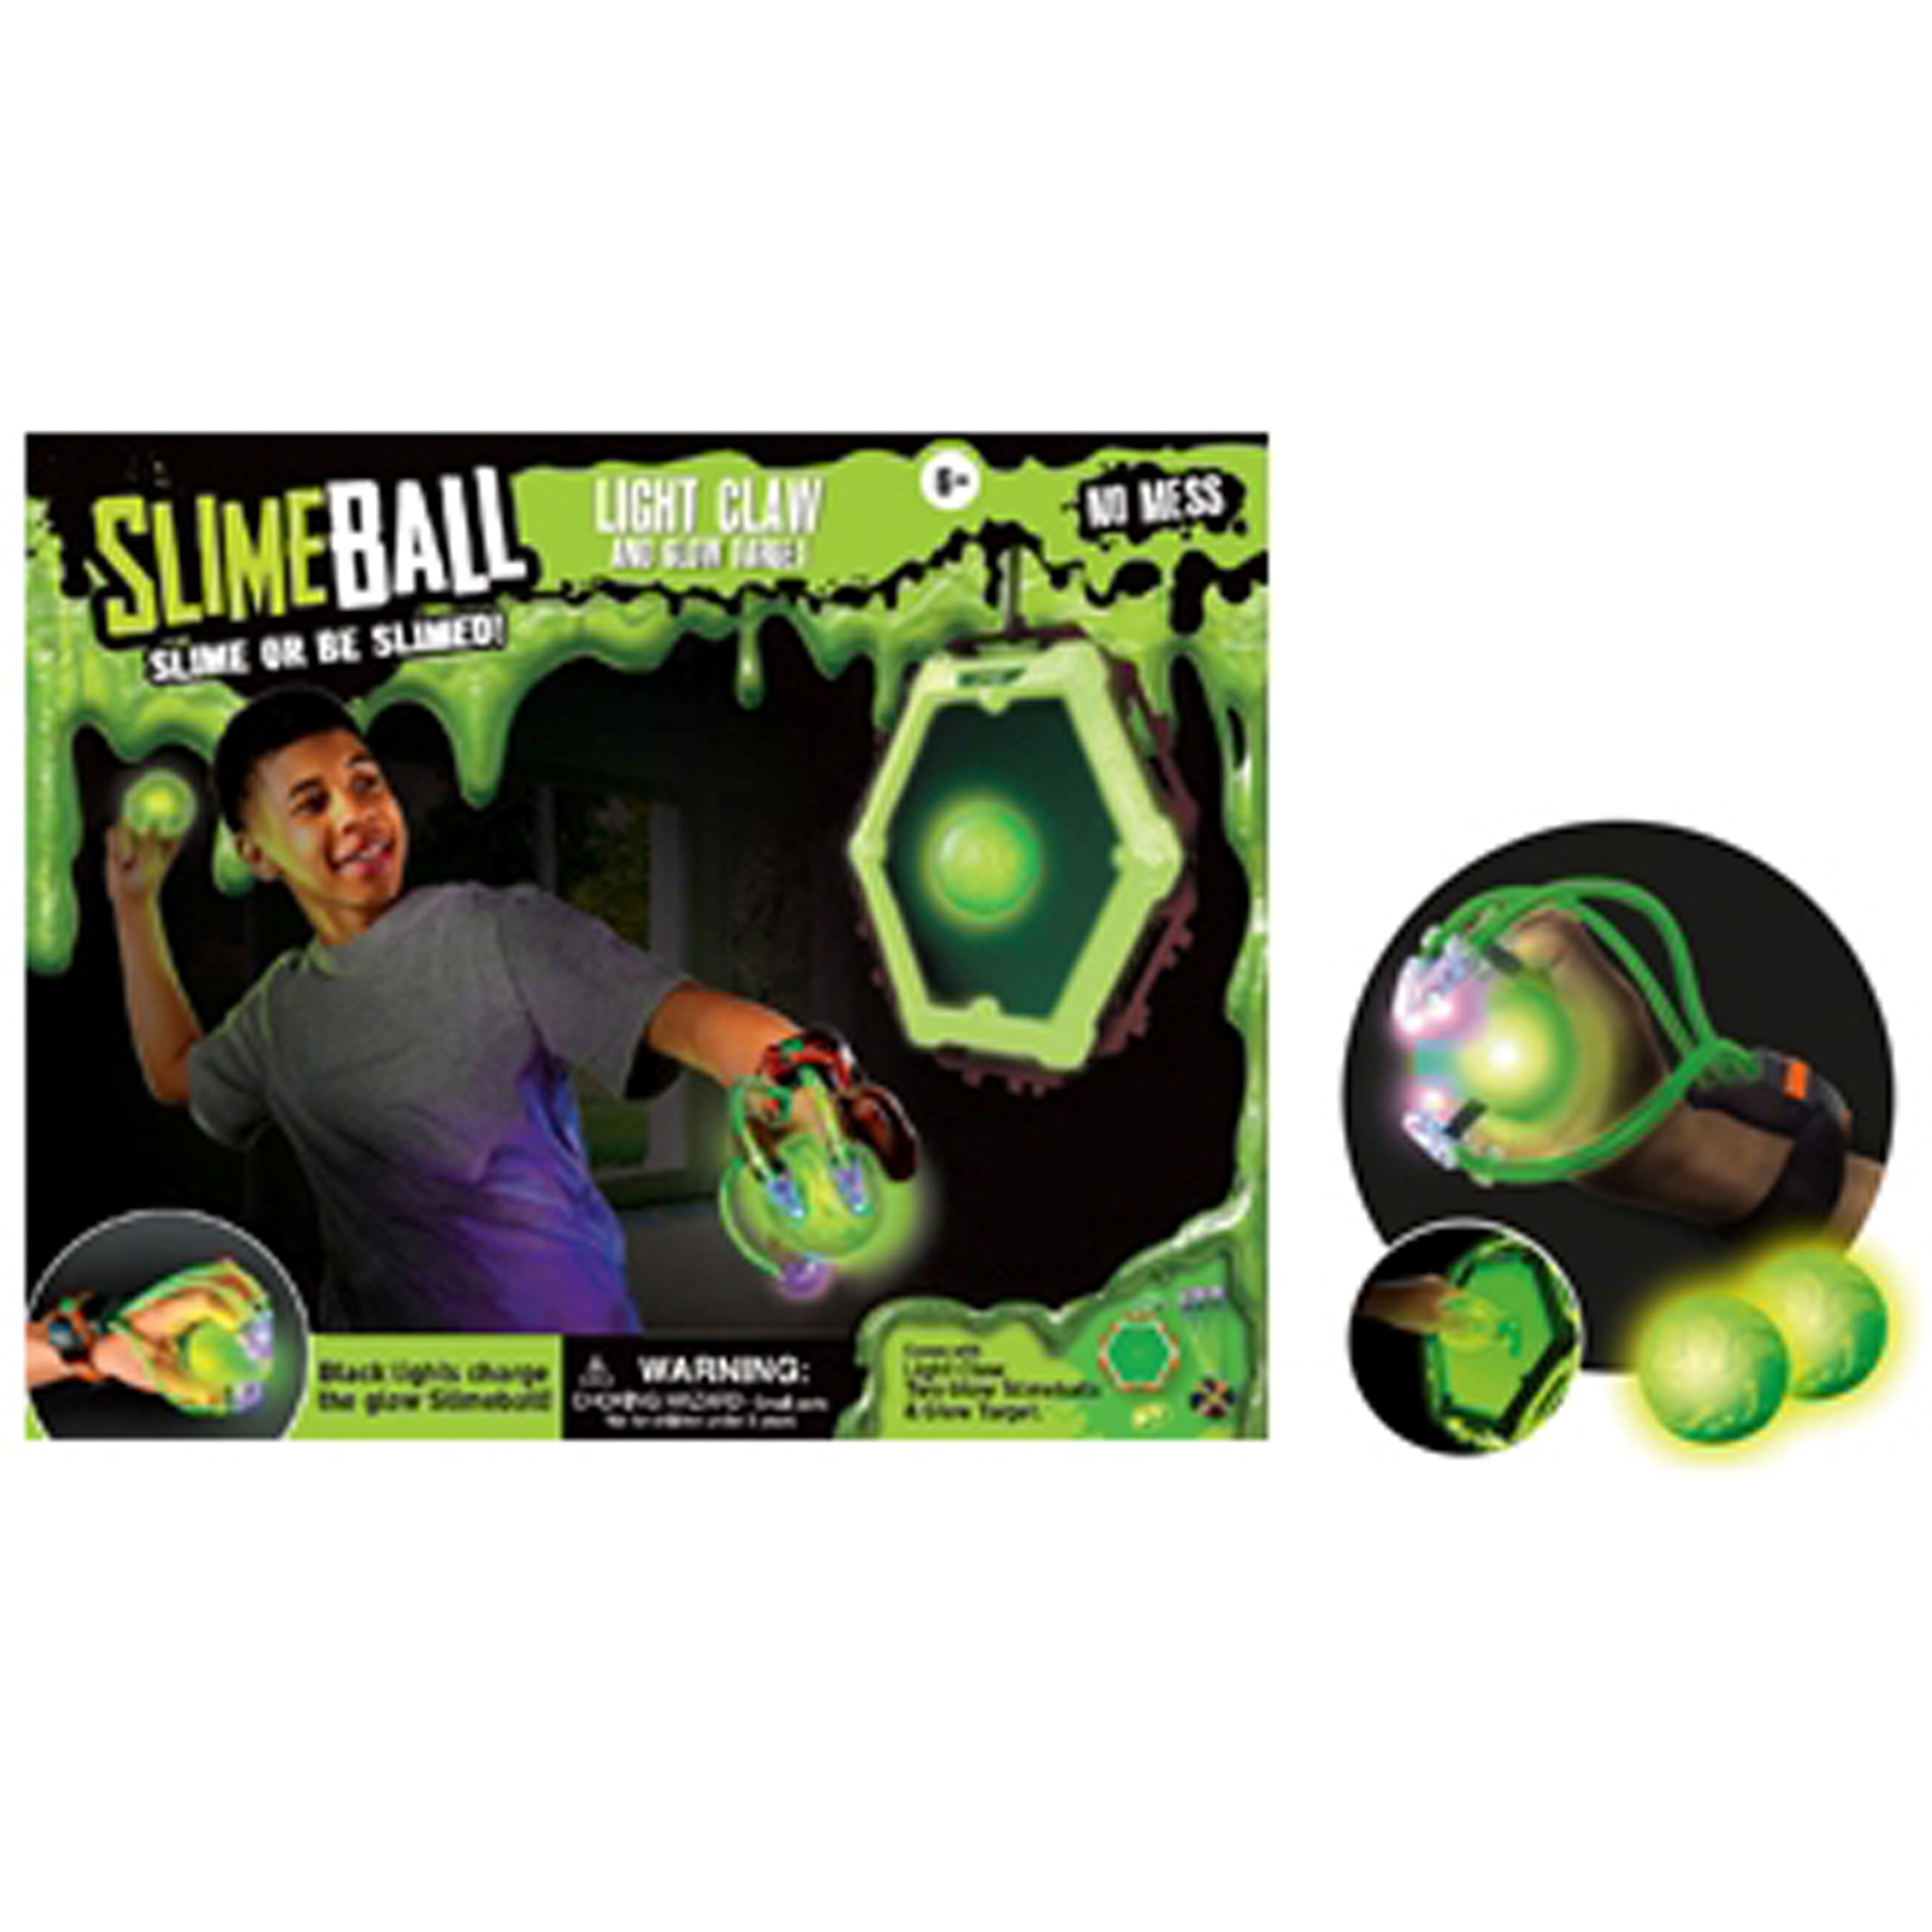 Diggin Active - Slimeball Light Claw & Glow Target